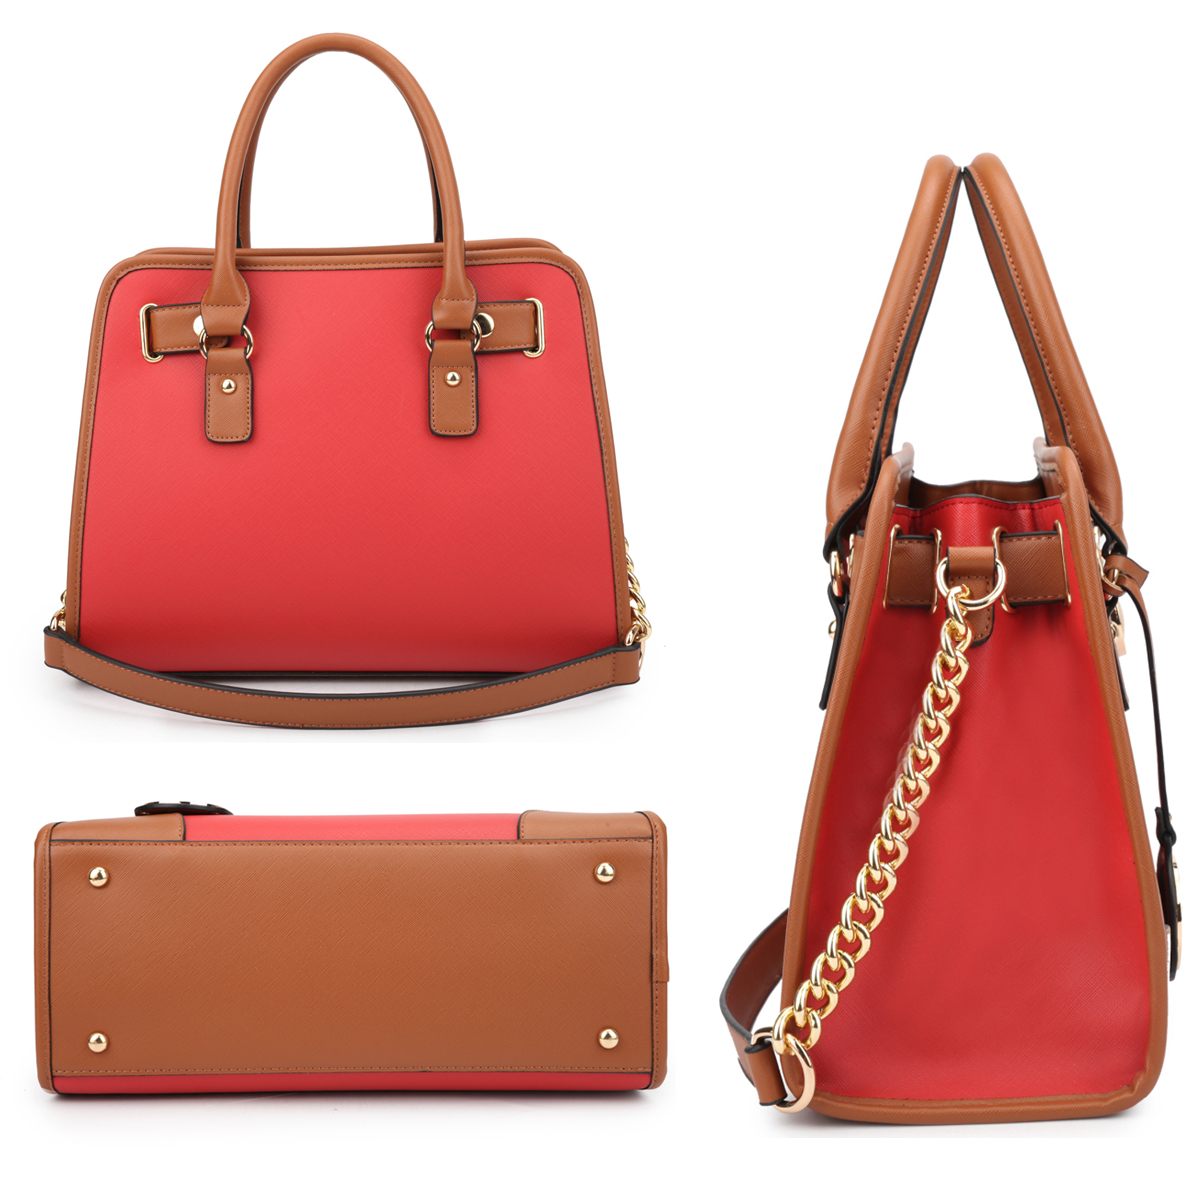 Dasein Medium Leather Satchel with Chain Shoulder Strap and with Matching Wallet